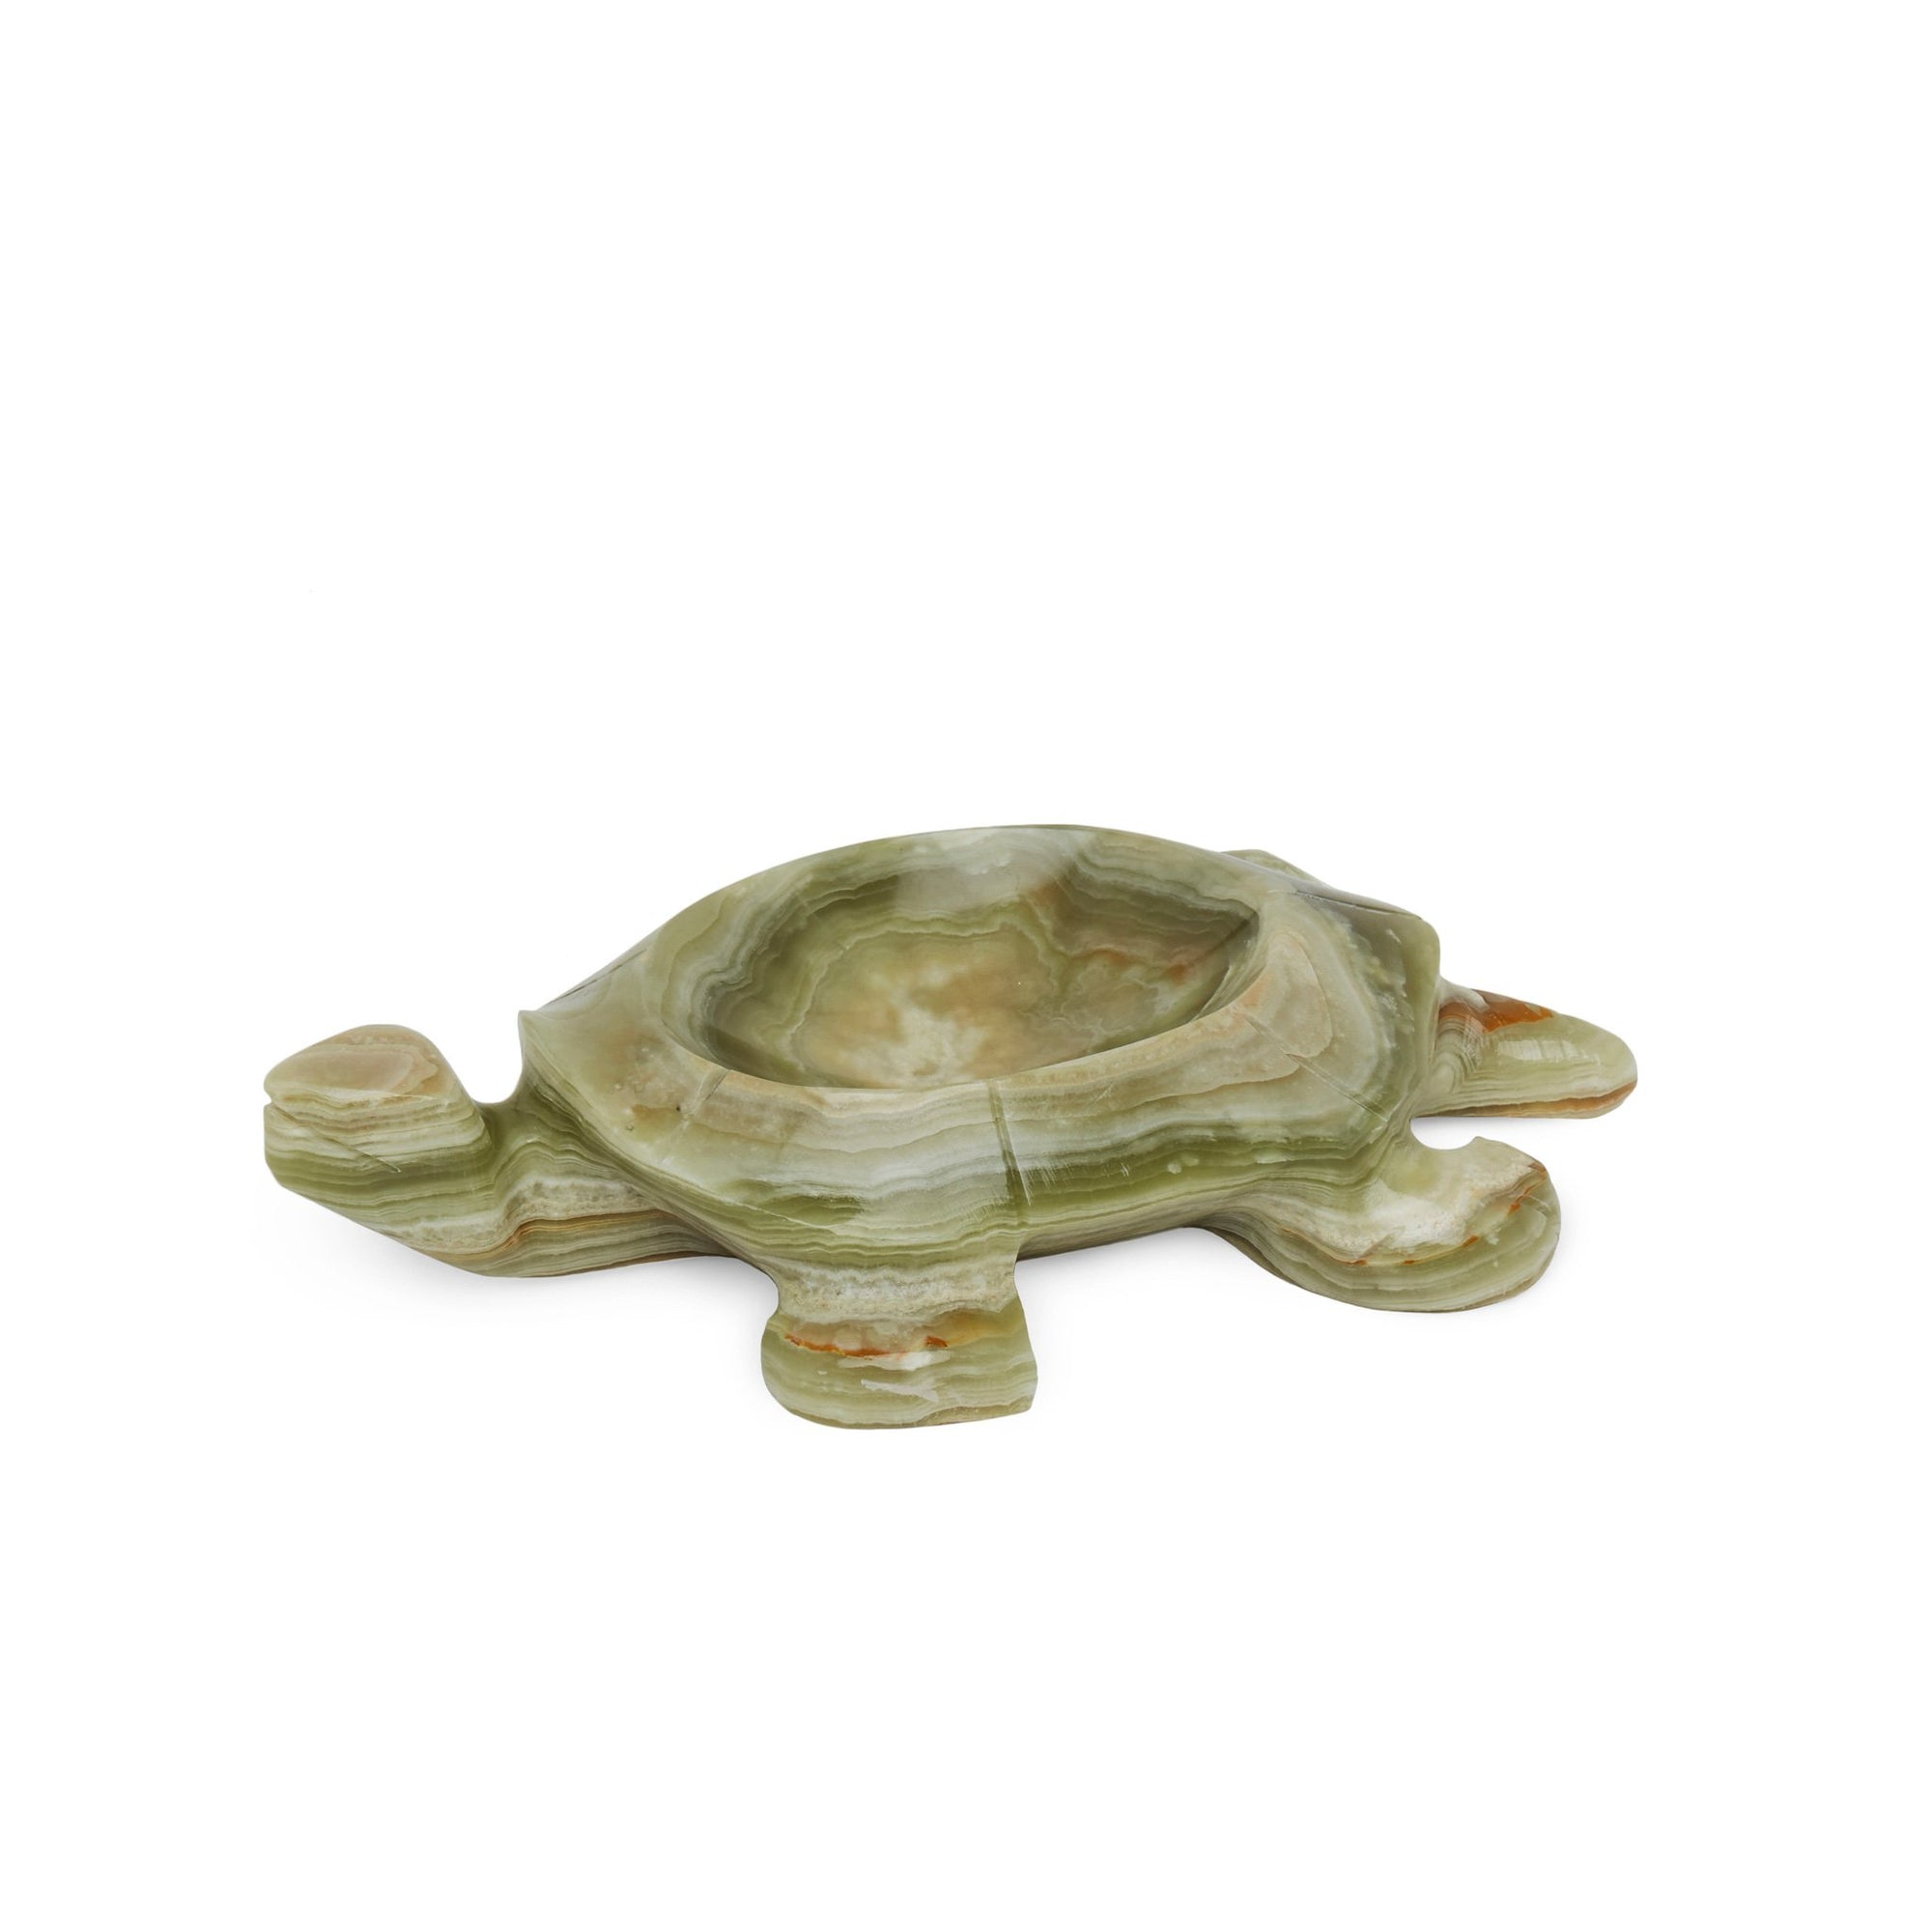 3366-GROX Sherle Wagner International Stone Turtle Soap Dish in Green Onyx